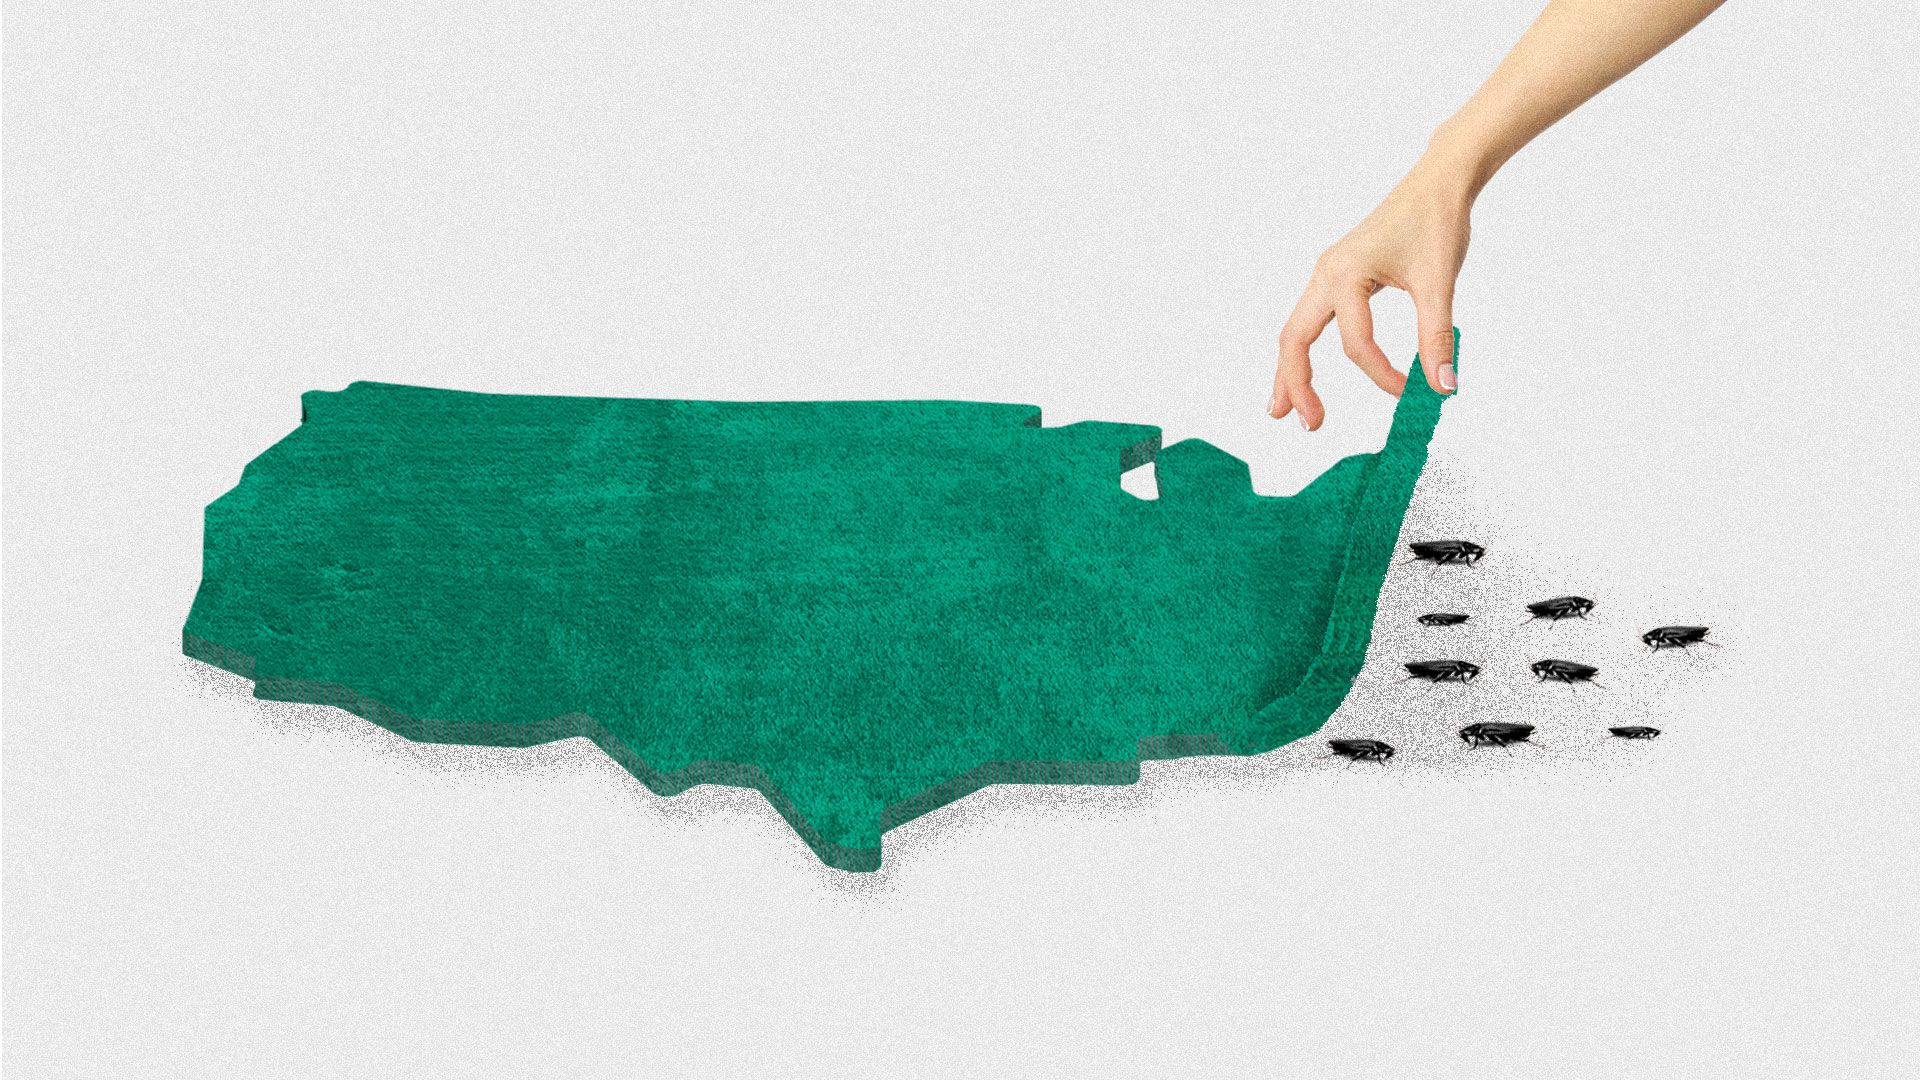 Illustration of the United States as a rug, a hand is pulling it up and revealing cockroaches underneath.